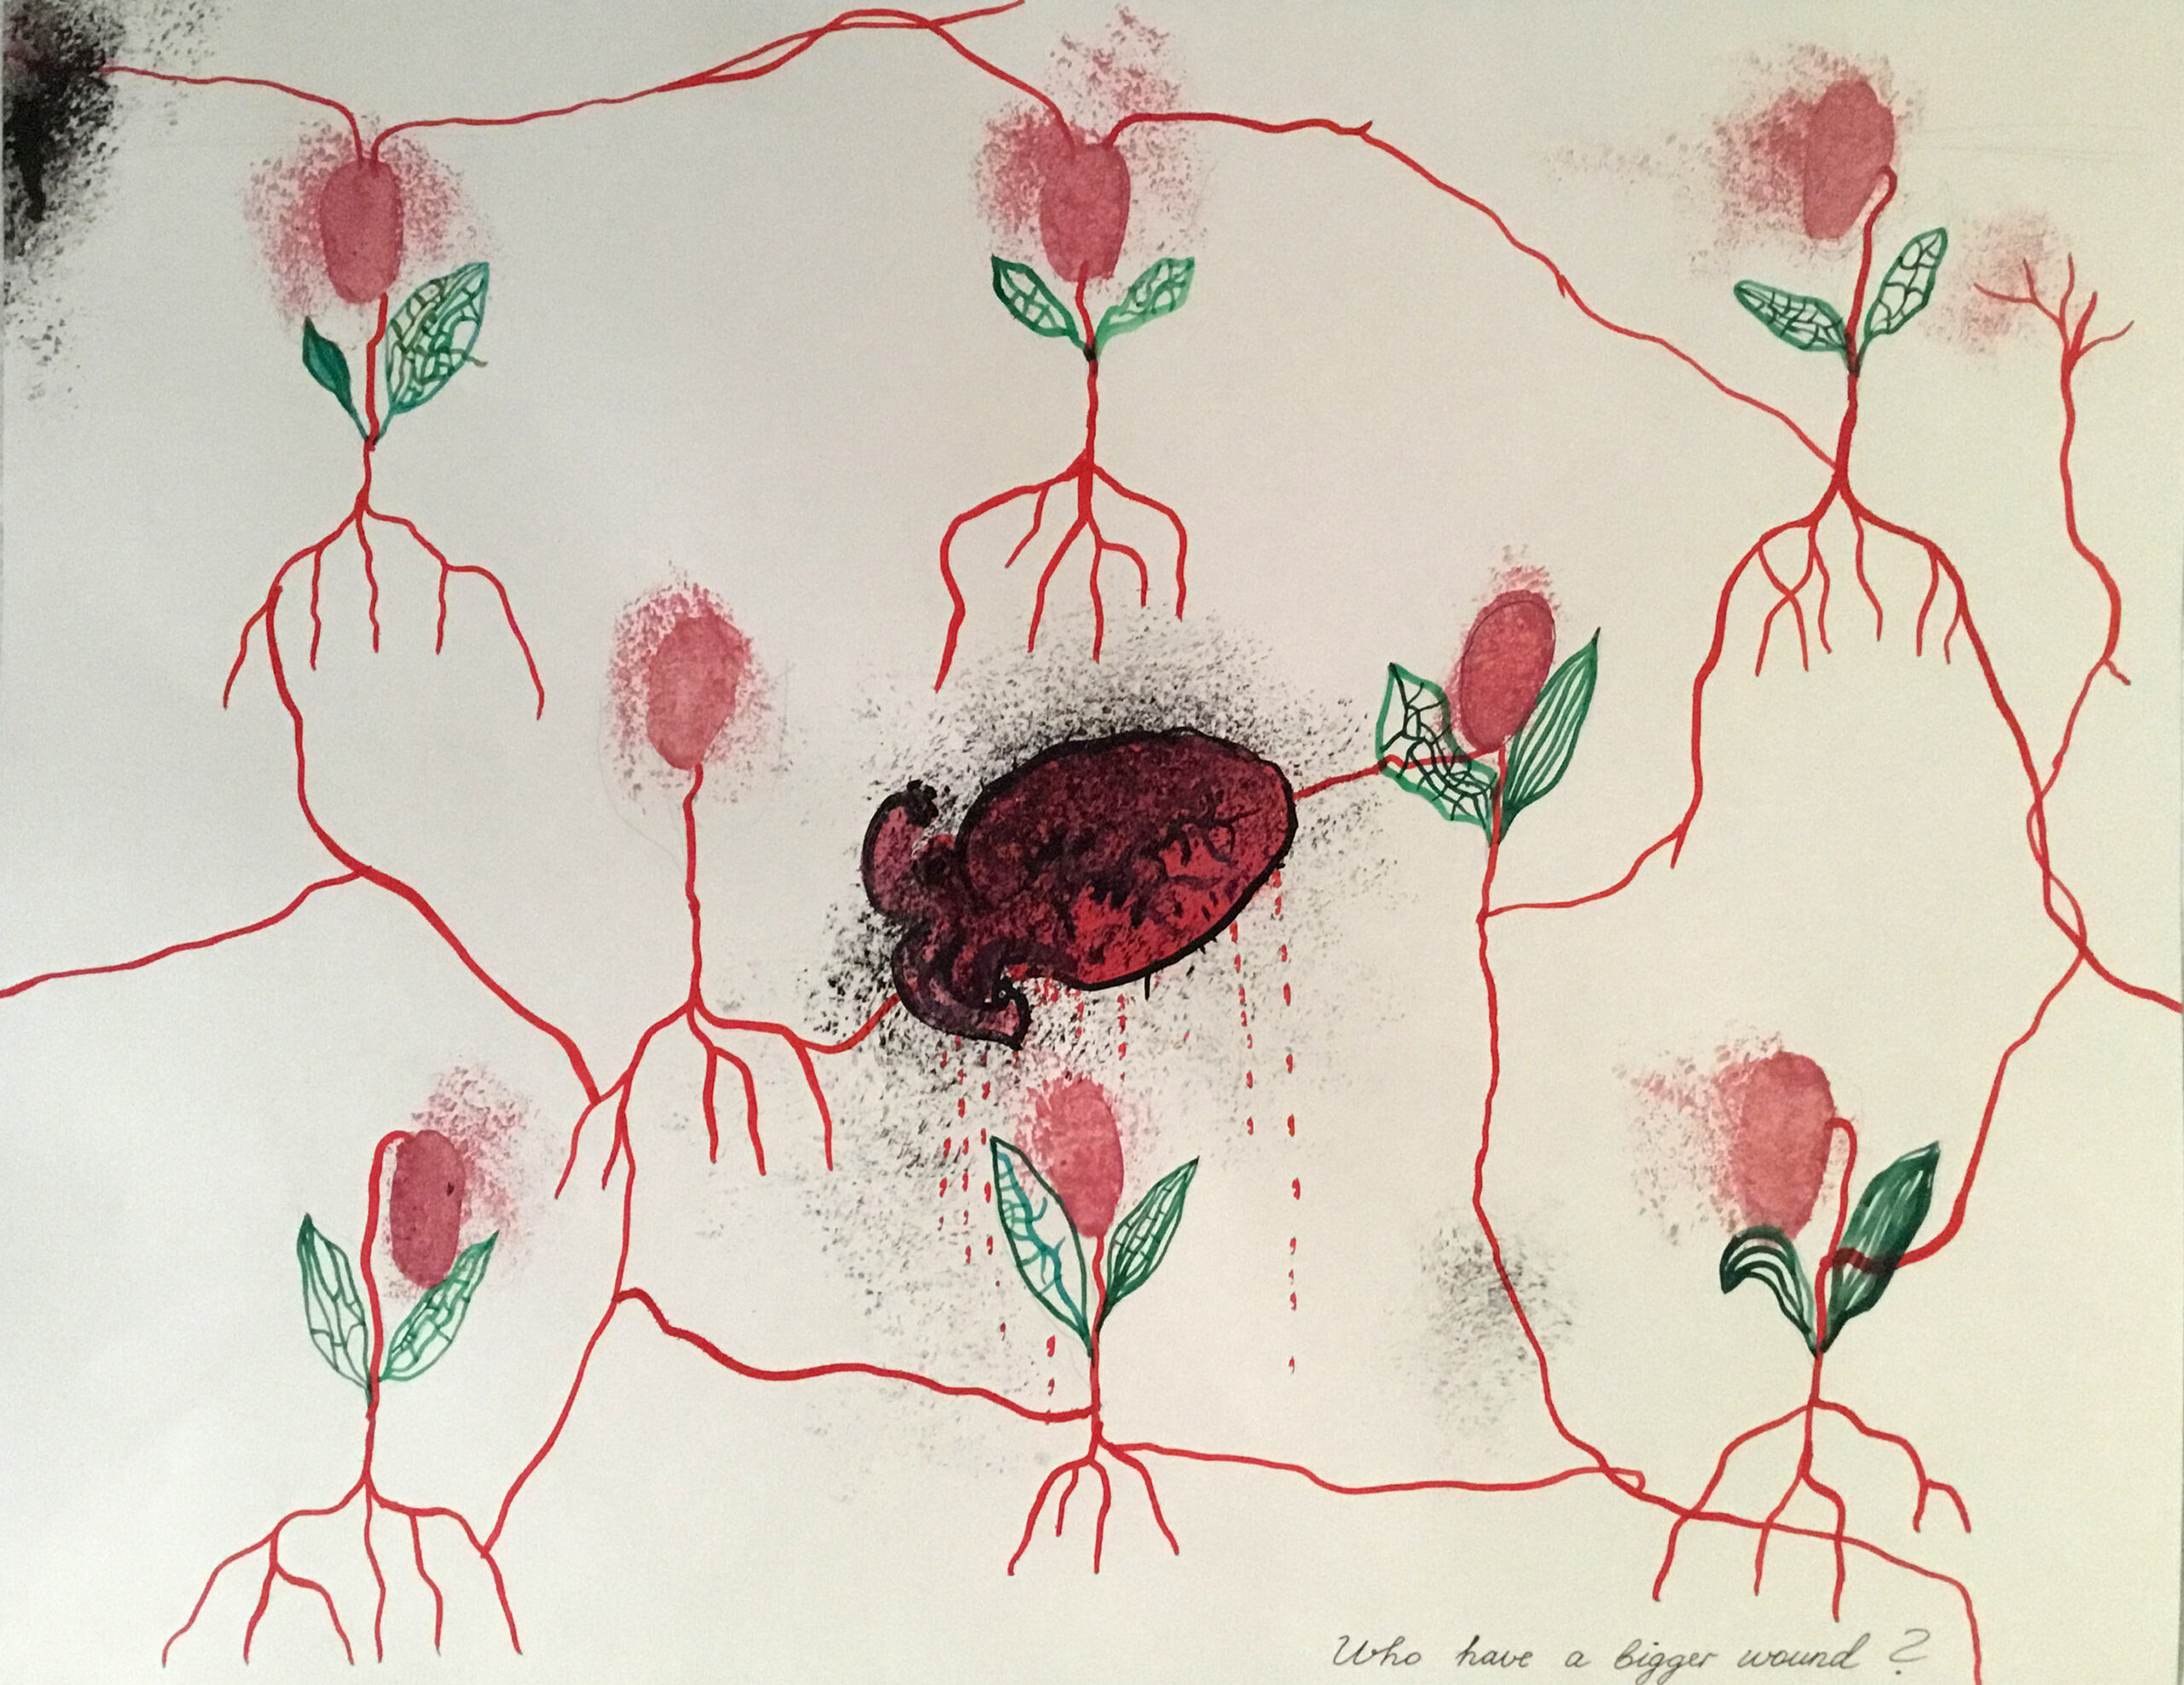 Watercolor of red anatomical heart dripping blood, surrounded by pink flowers with red root system.